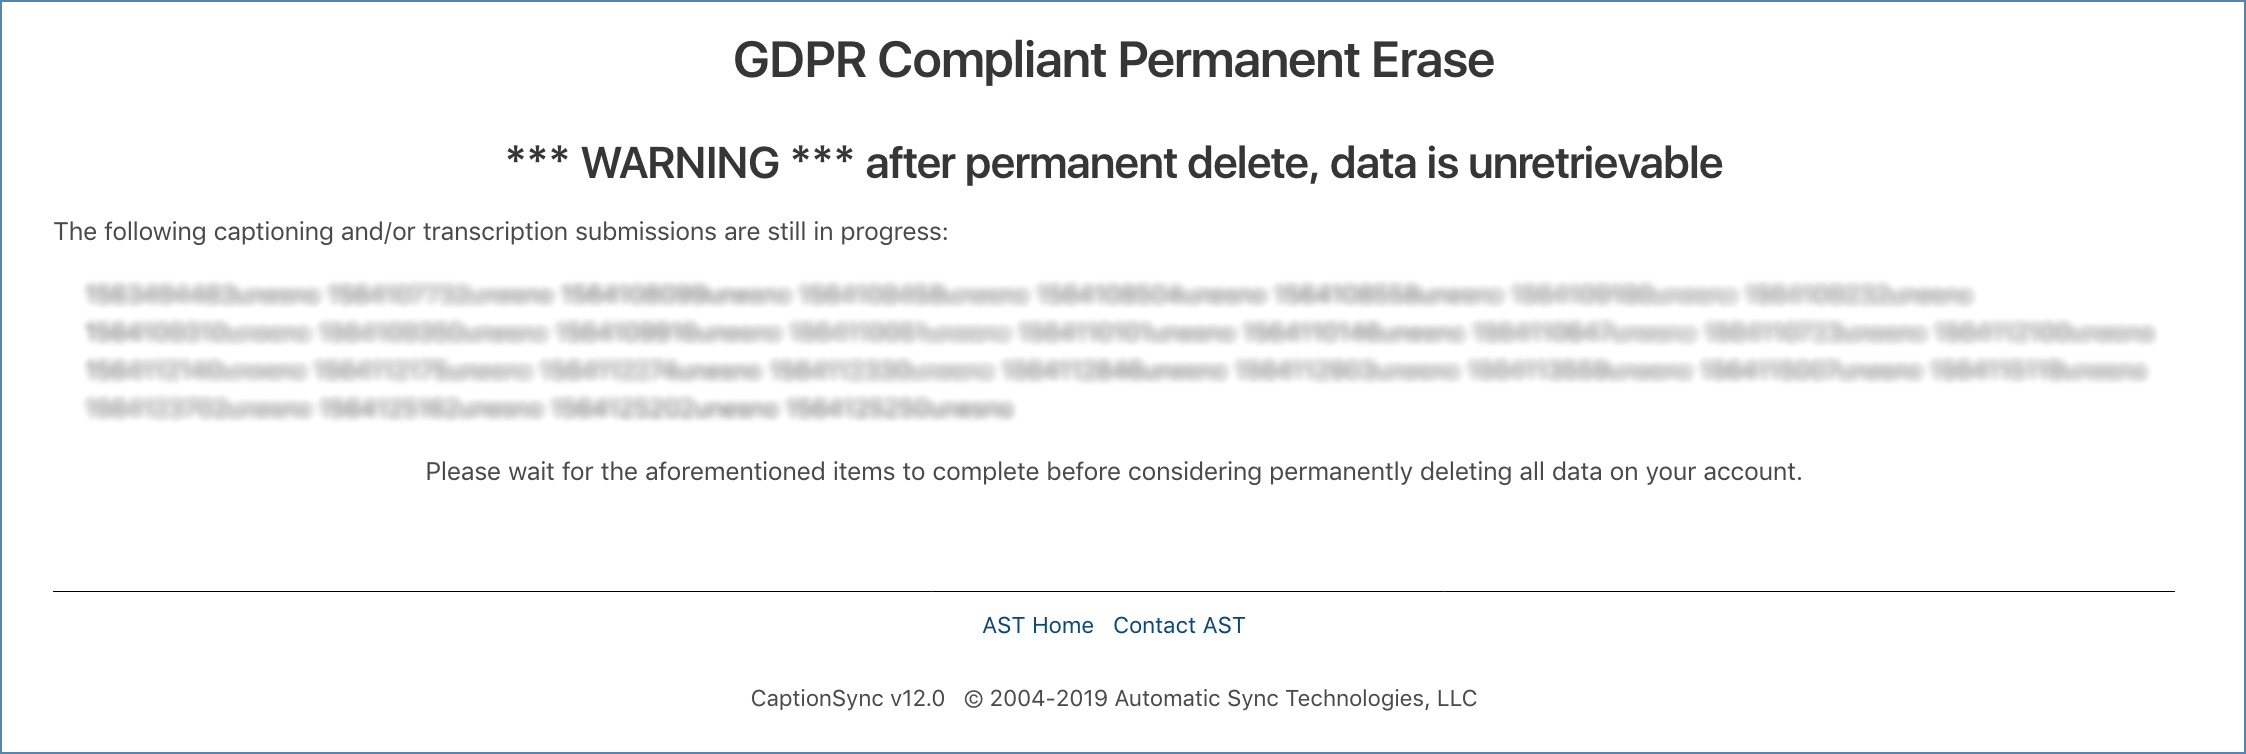 Image of the GDPR Compliant Permanent Erase page